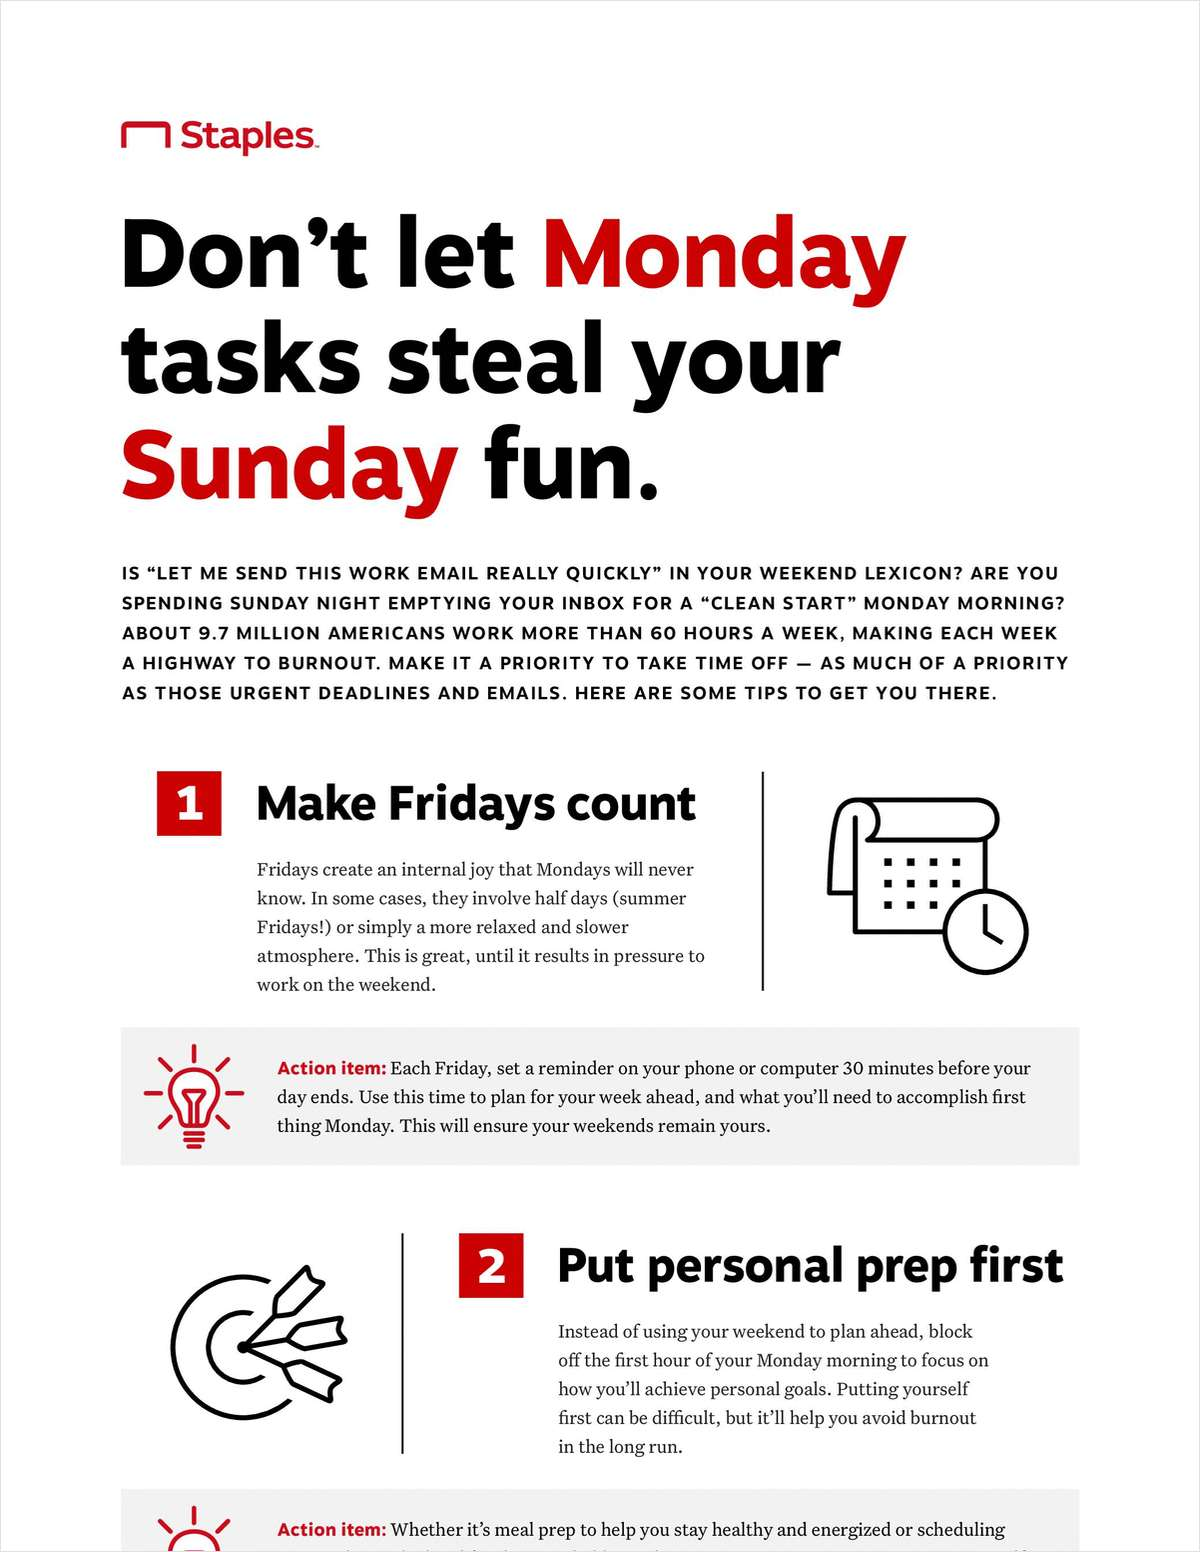 Does Work Creep Into Your Weekend?